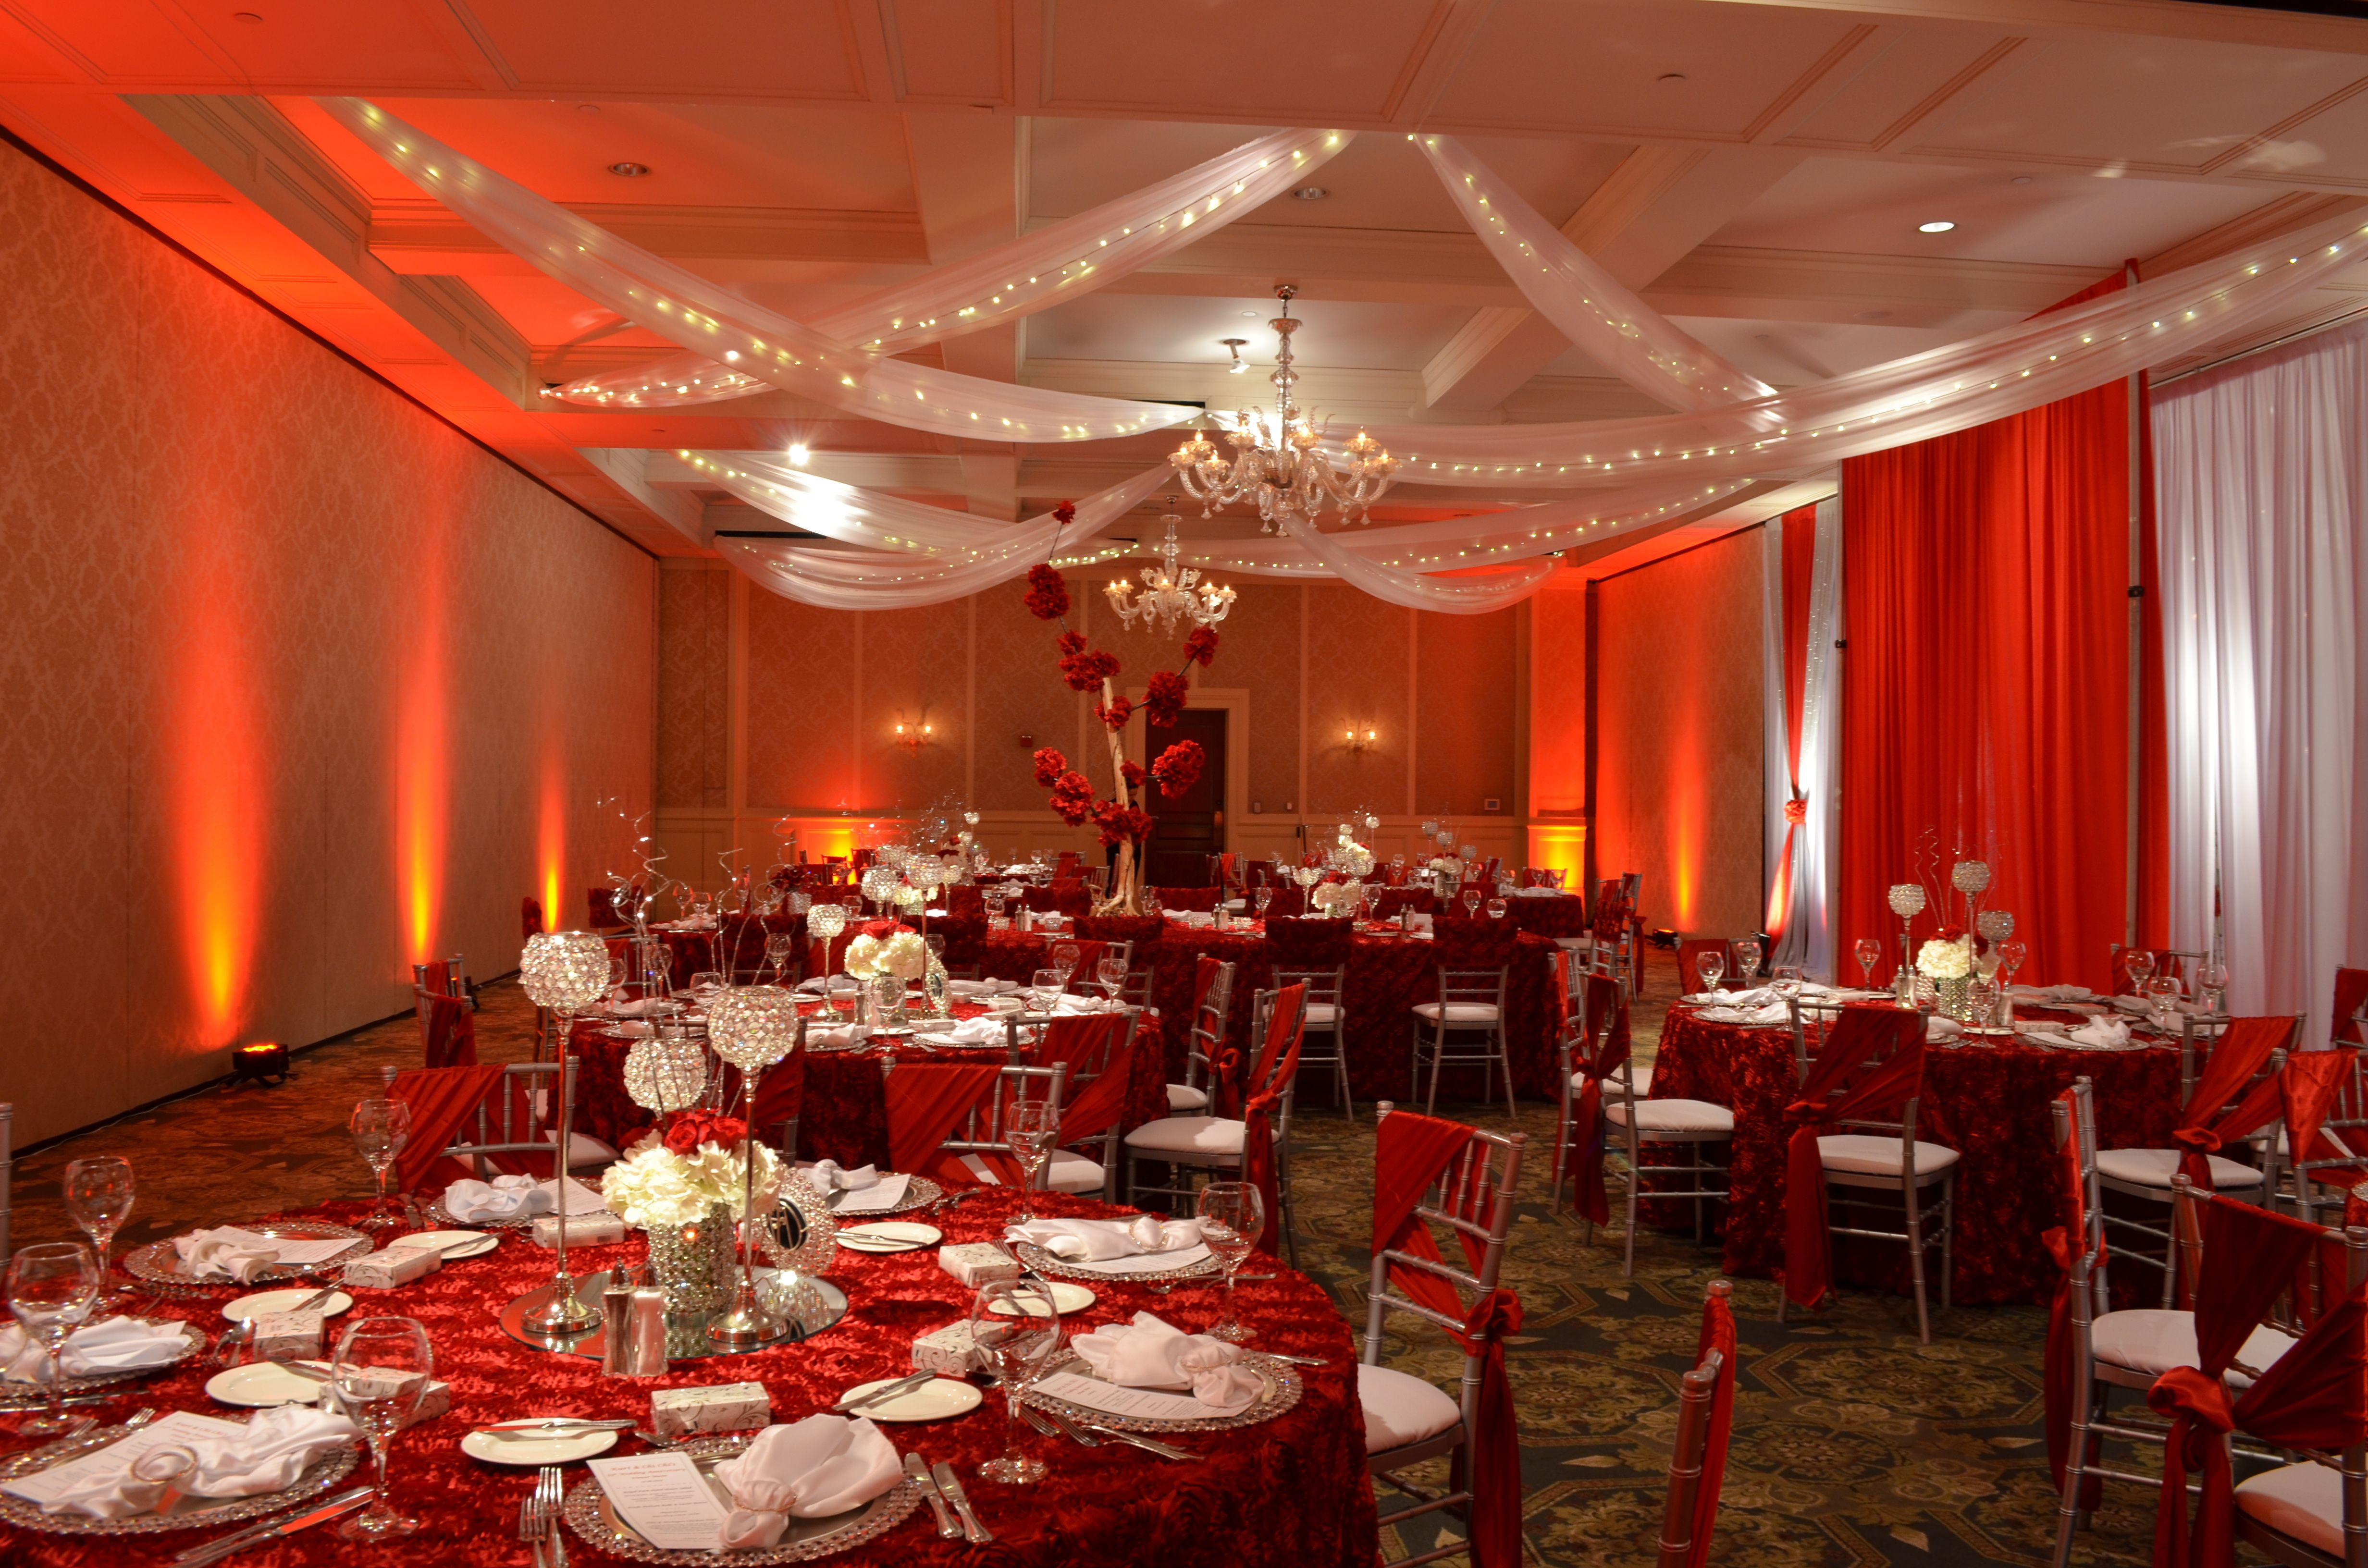 Ceiling Lights for Wedding Reception